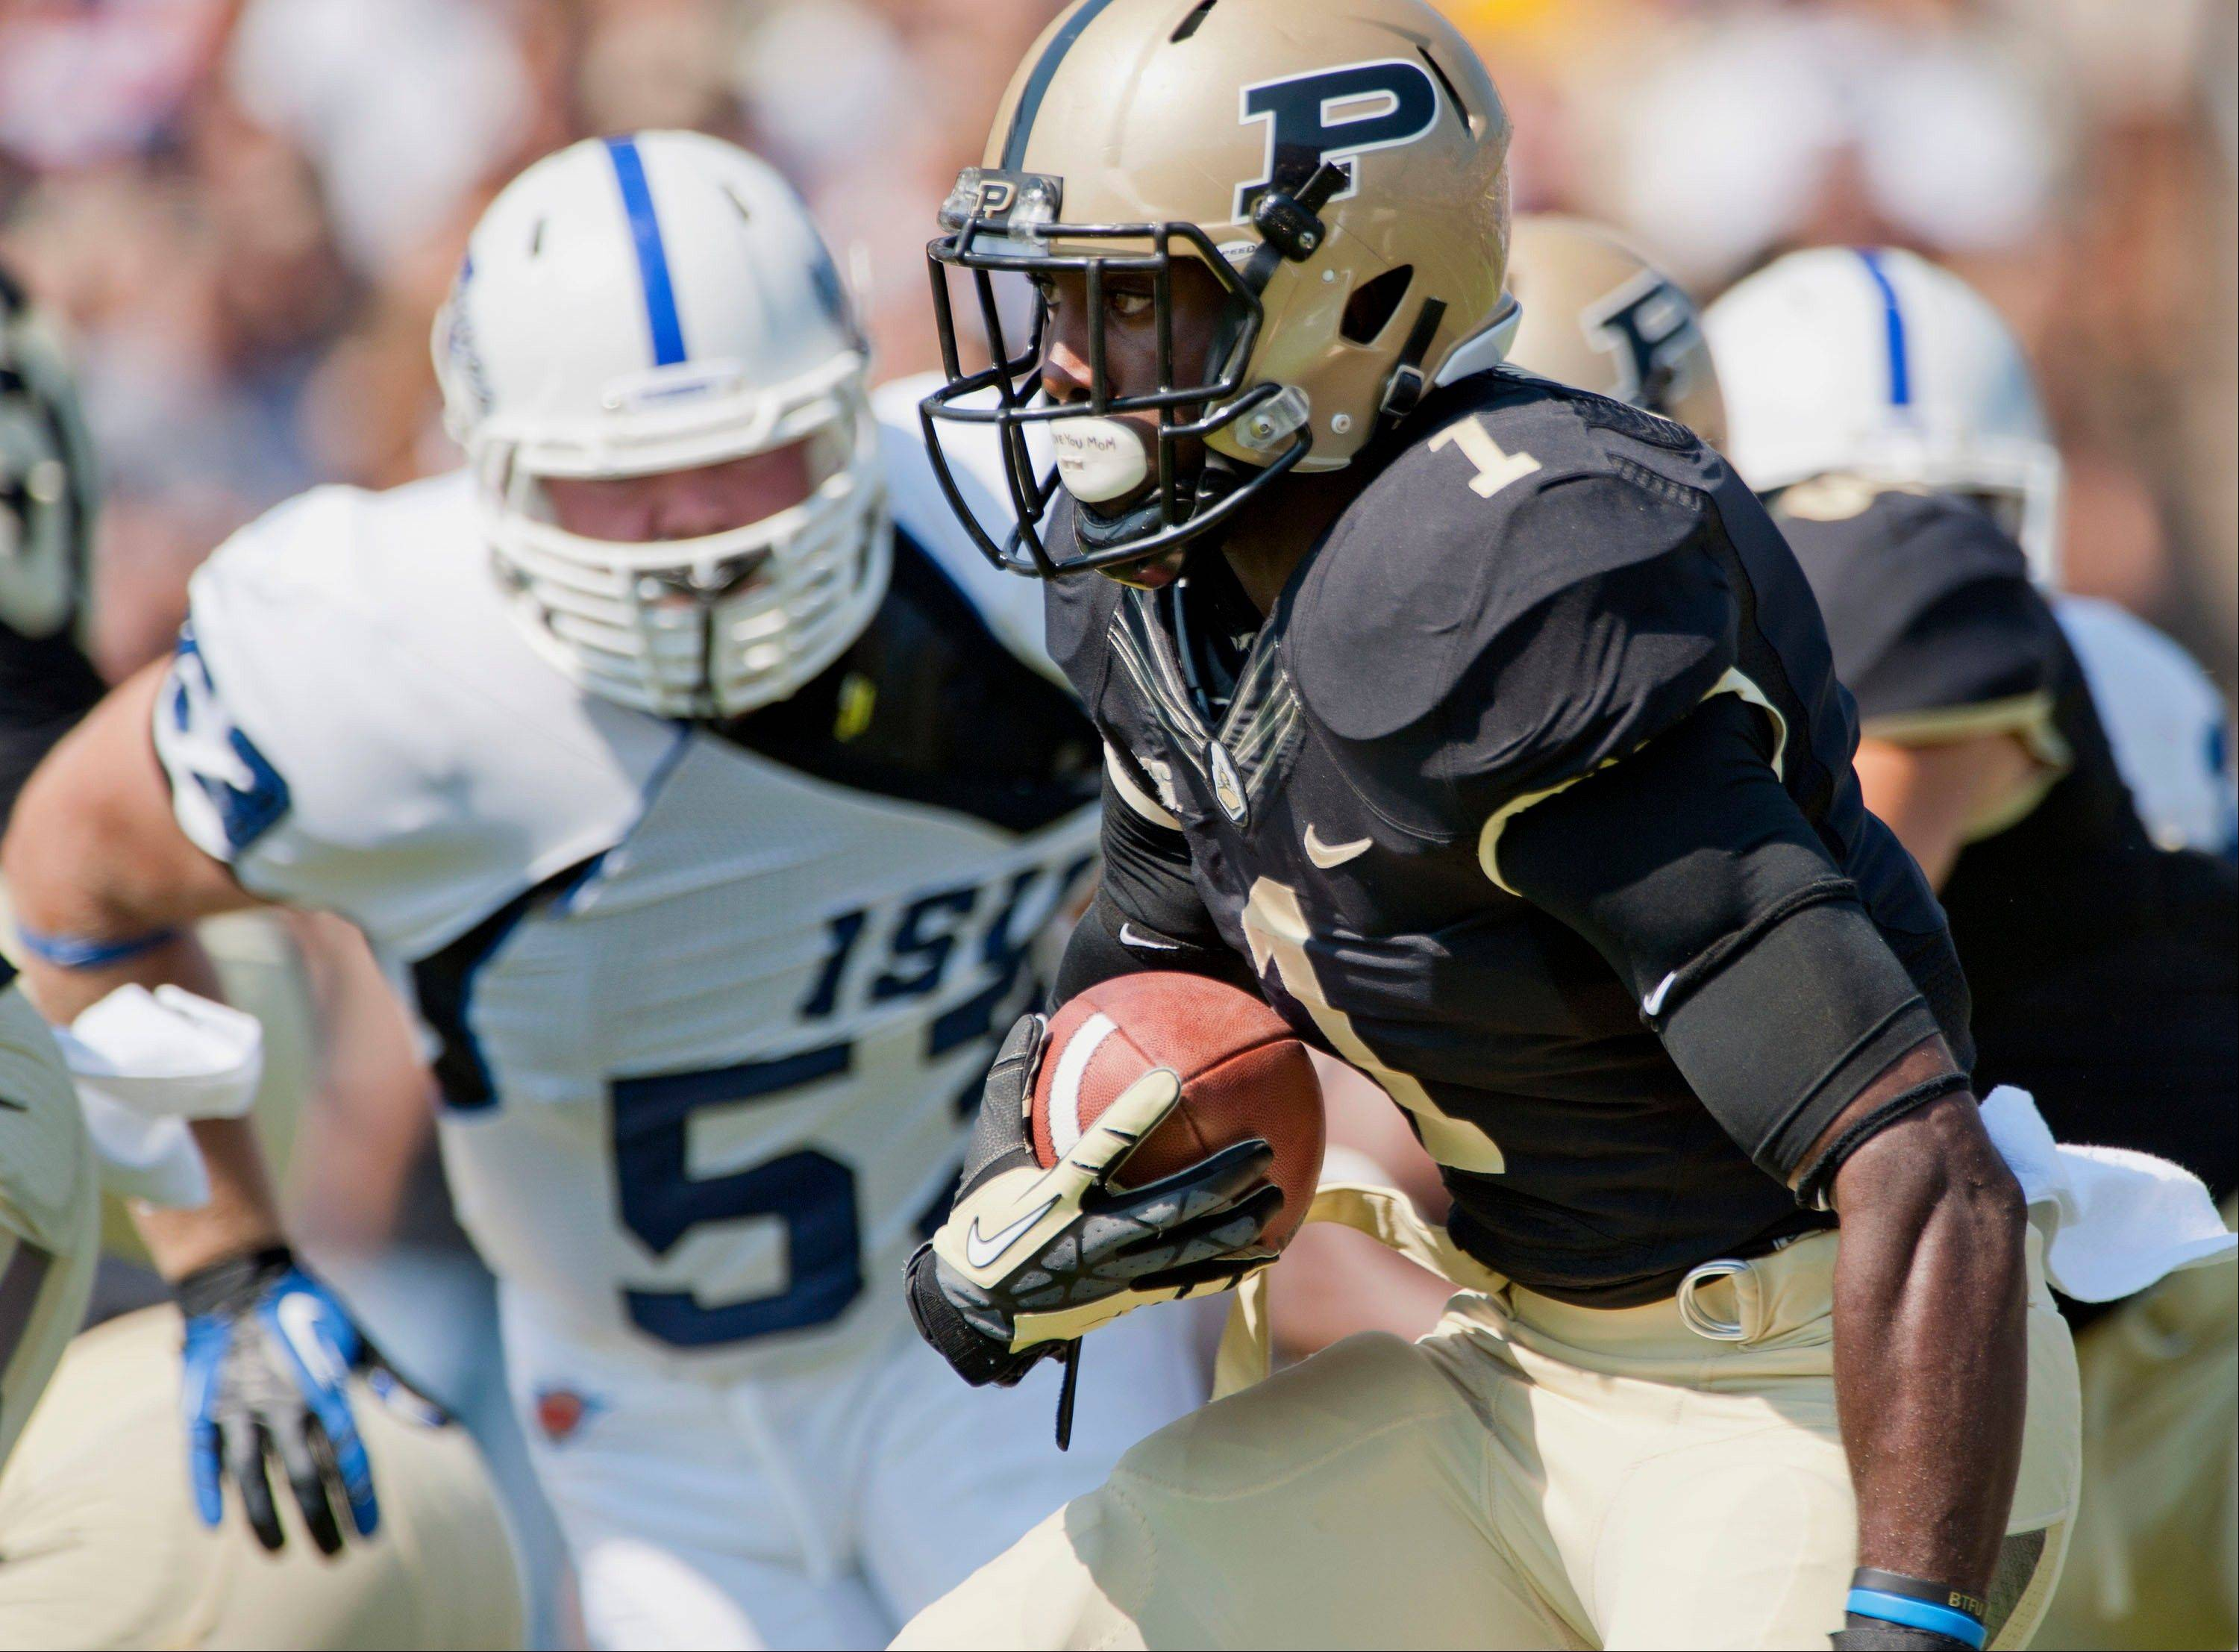 Purdue's Akeem Hunt carries the ball against Indiana State during the first half of last Saturday's win in West Lafayette, Ind. The Boilermakers have scored only two offensive touchdowns so far this season.